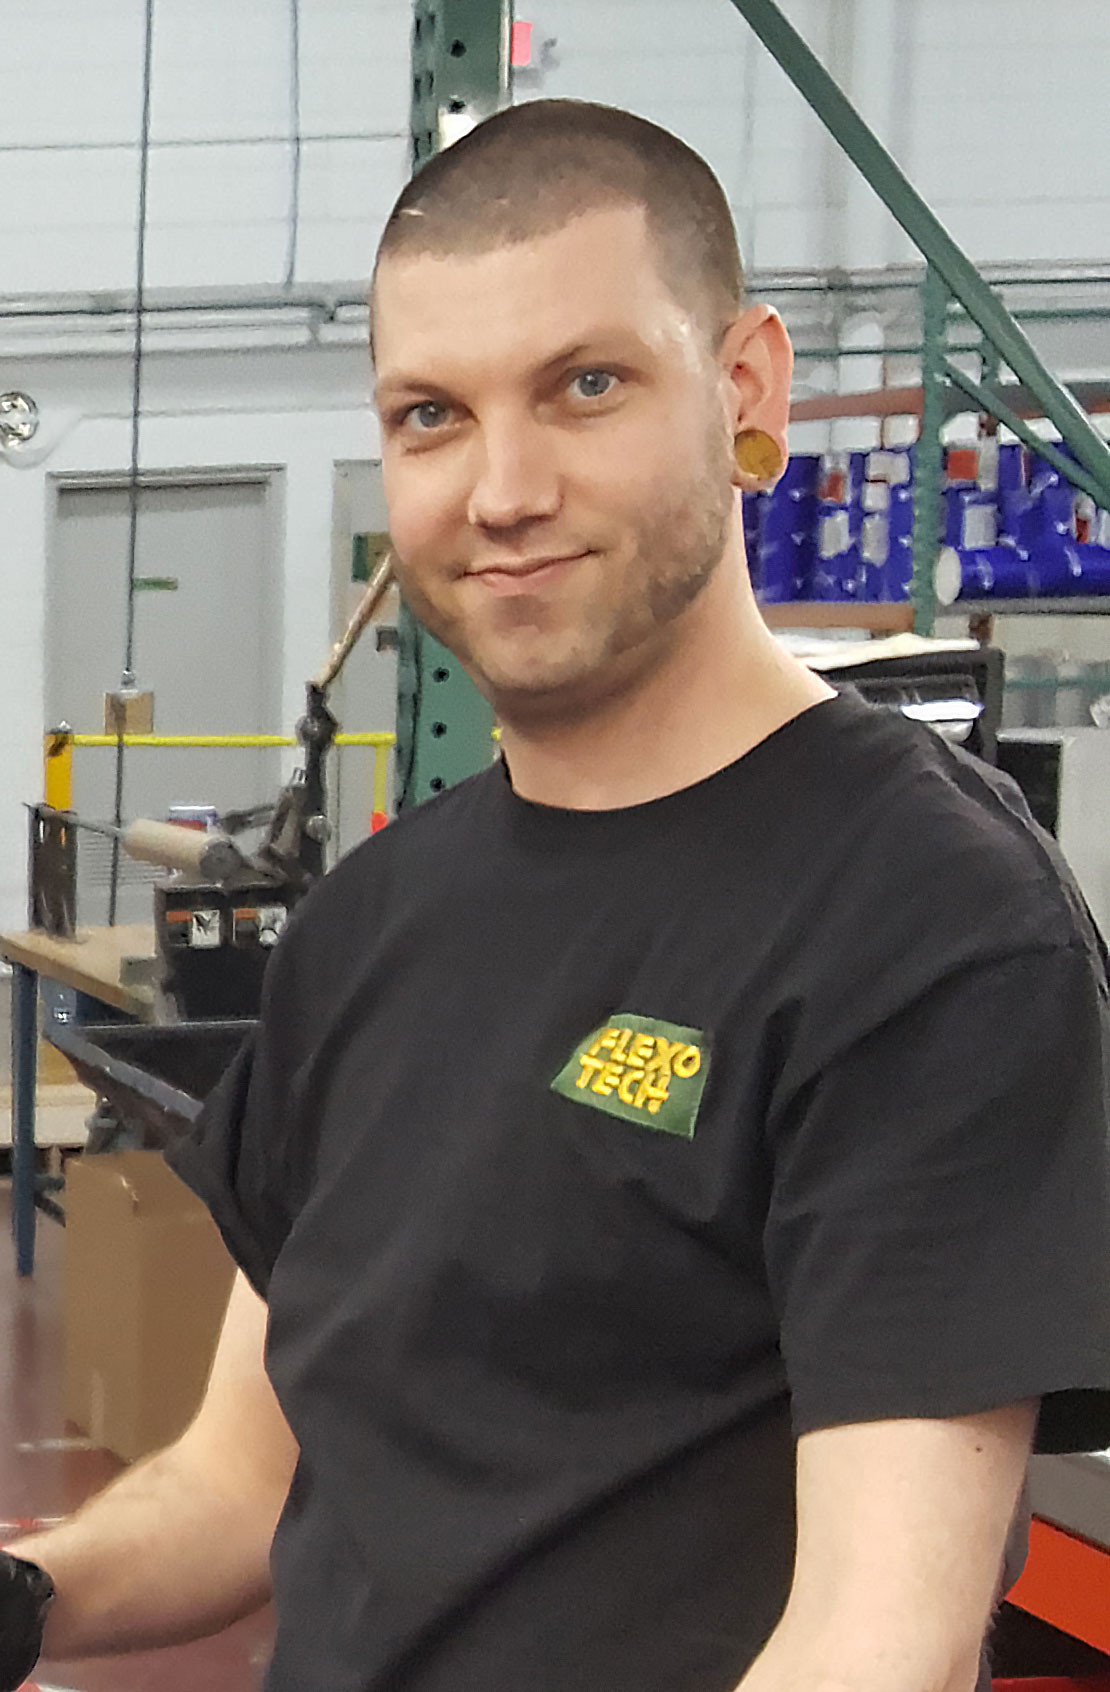 Ed Lashley:  - The Flexo Tech Class was intense and I learned a lot. I never thought there was this much to know about printing.